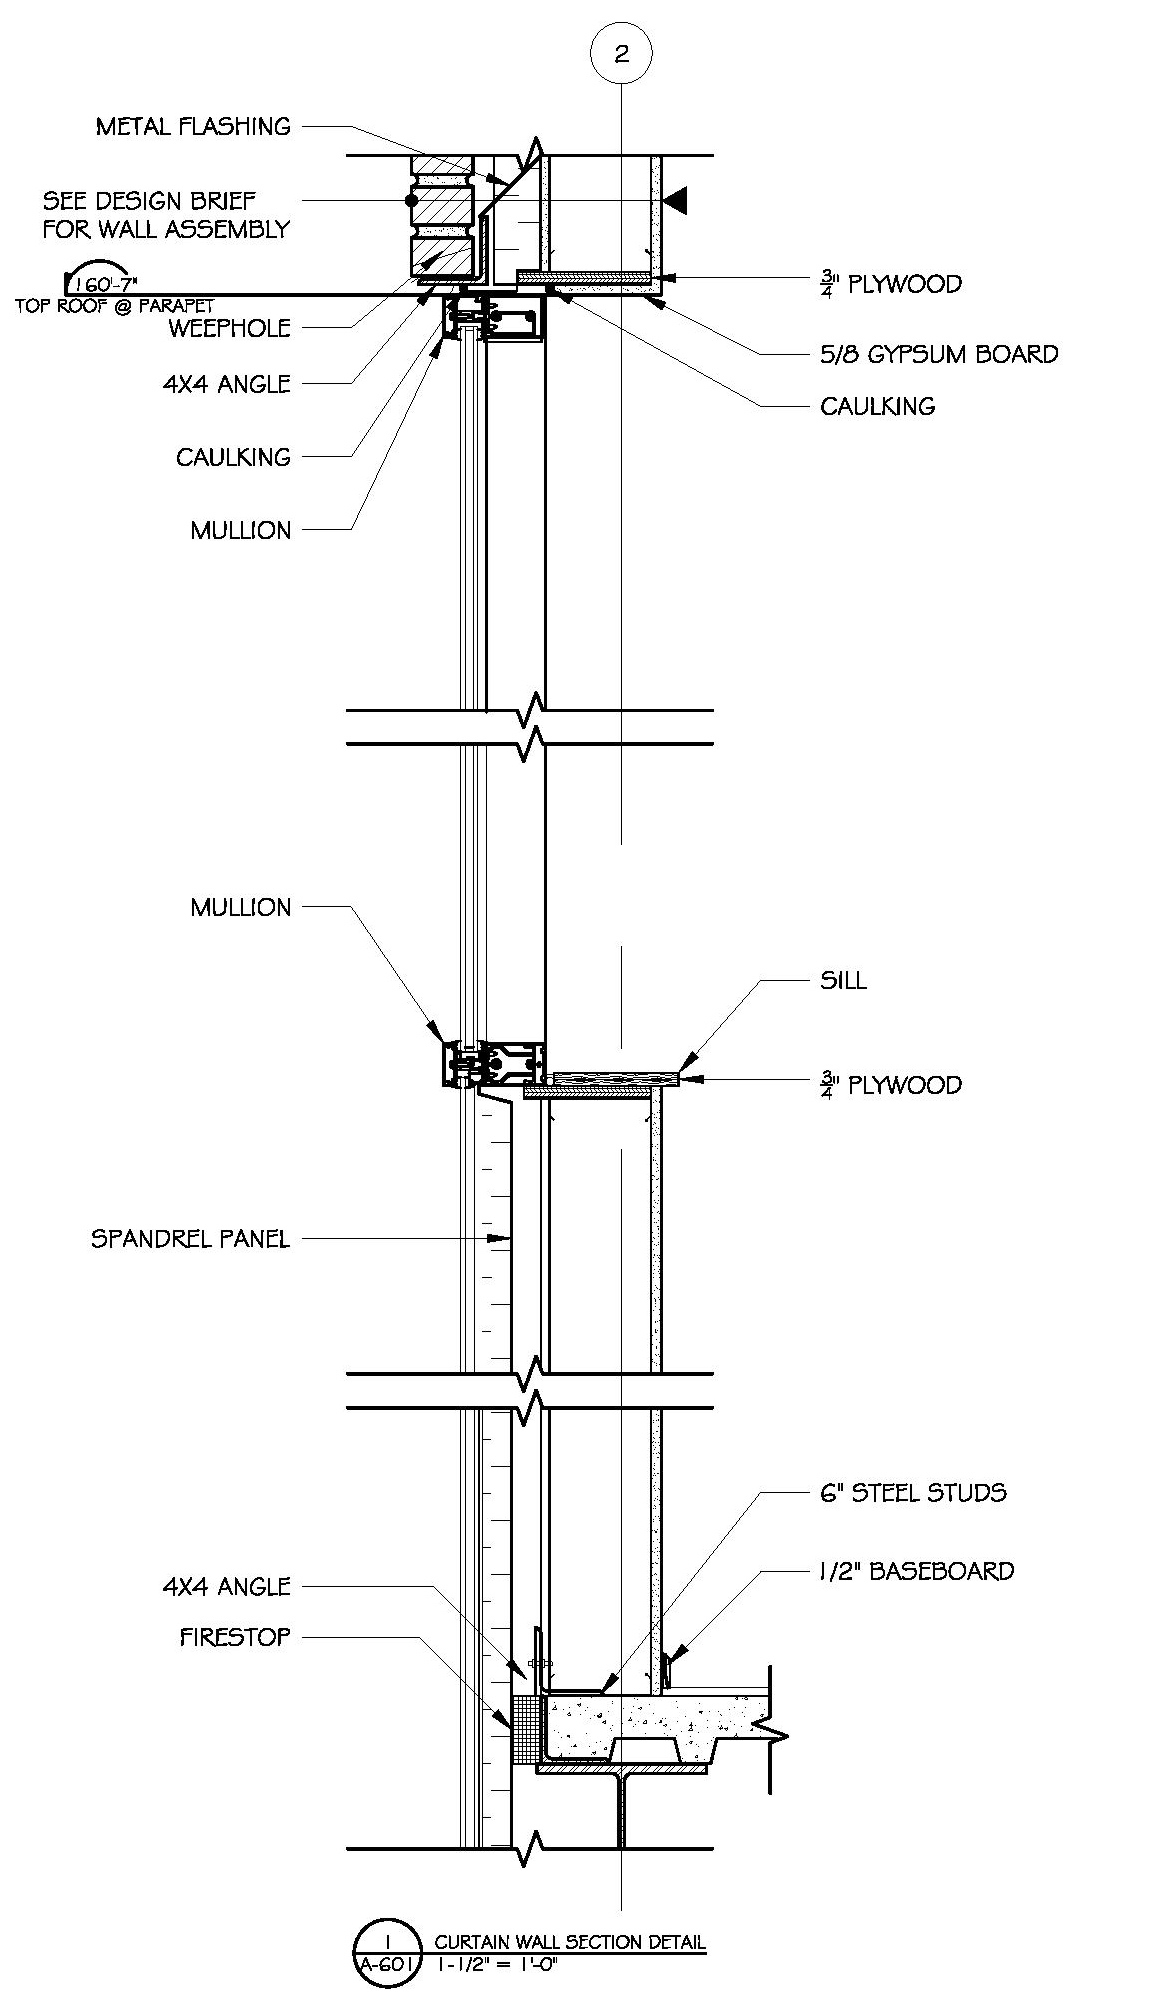 Lovely Curtain Wall Wall Section · Commercial Building Plans By Raymond Alberga At  Coroflot.com